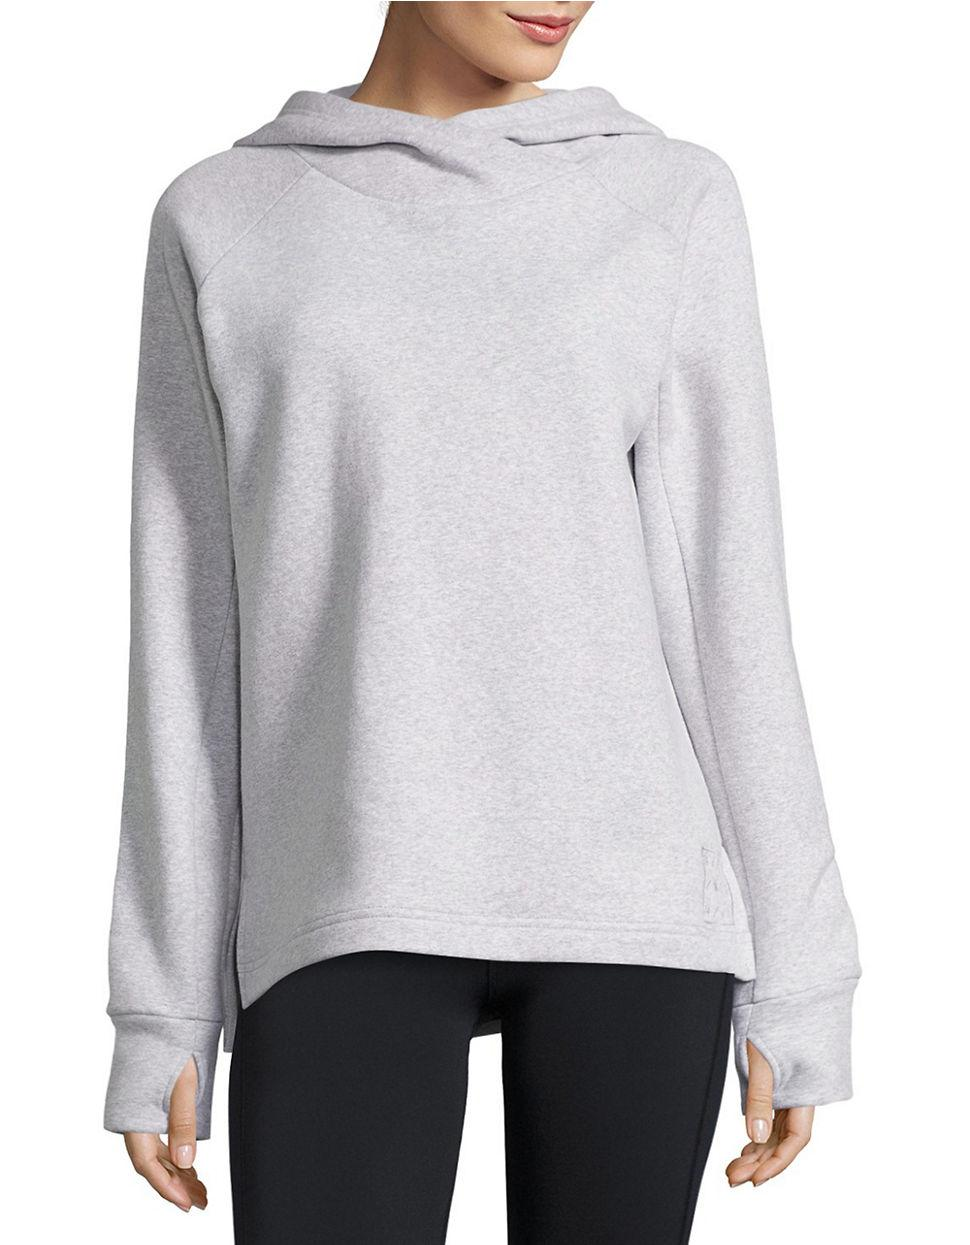 Bench Double-Knit Thumb-Hole Hoodie In Gray  Lyst-4611